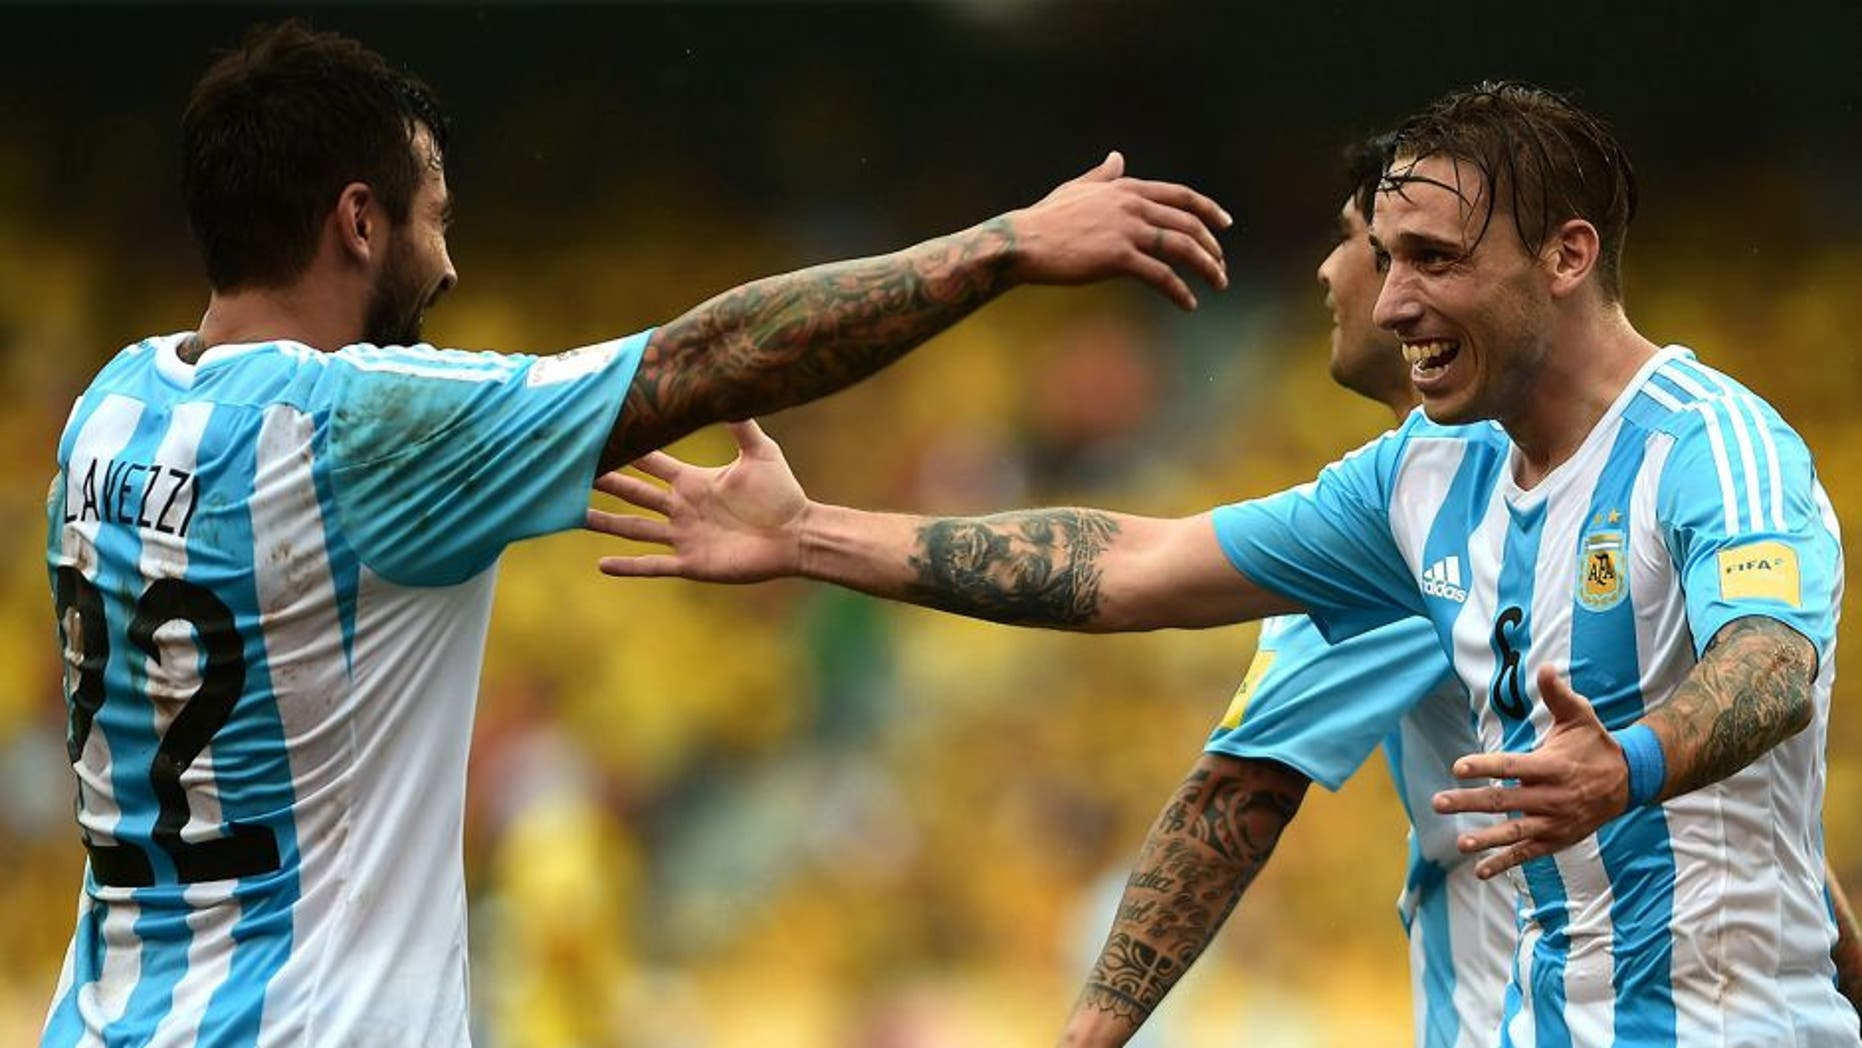 Argentina's Lucas Biglia (R) celebrates with Ezequiel Lavezzi after scoring against Colombia during their Russia 2018 FIFA World Cup South American Qualifiers football match, in Barranquilla on November 17, 2015. AFP PHOTO / LUIS ROBAYO (Photo credit should read LUIS ROBAYO/AFP/Getty Images)